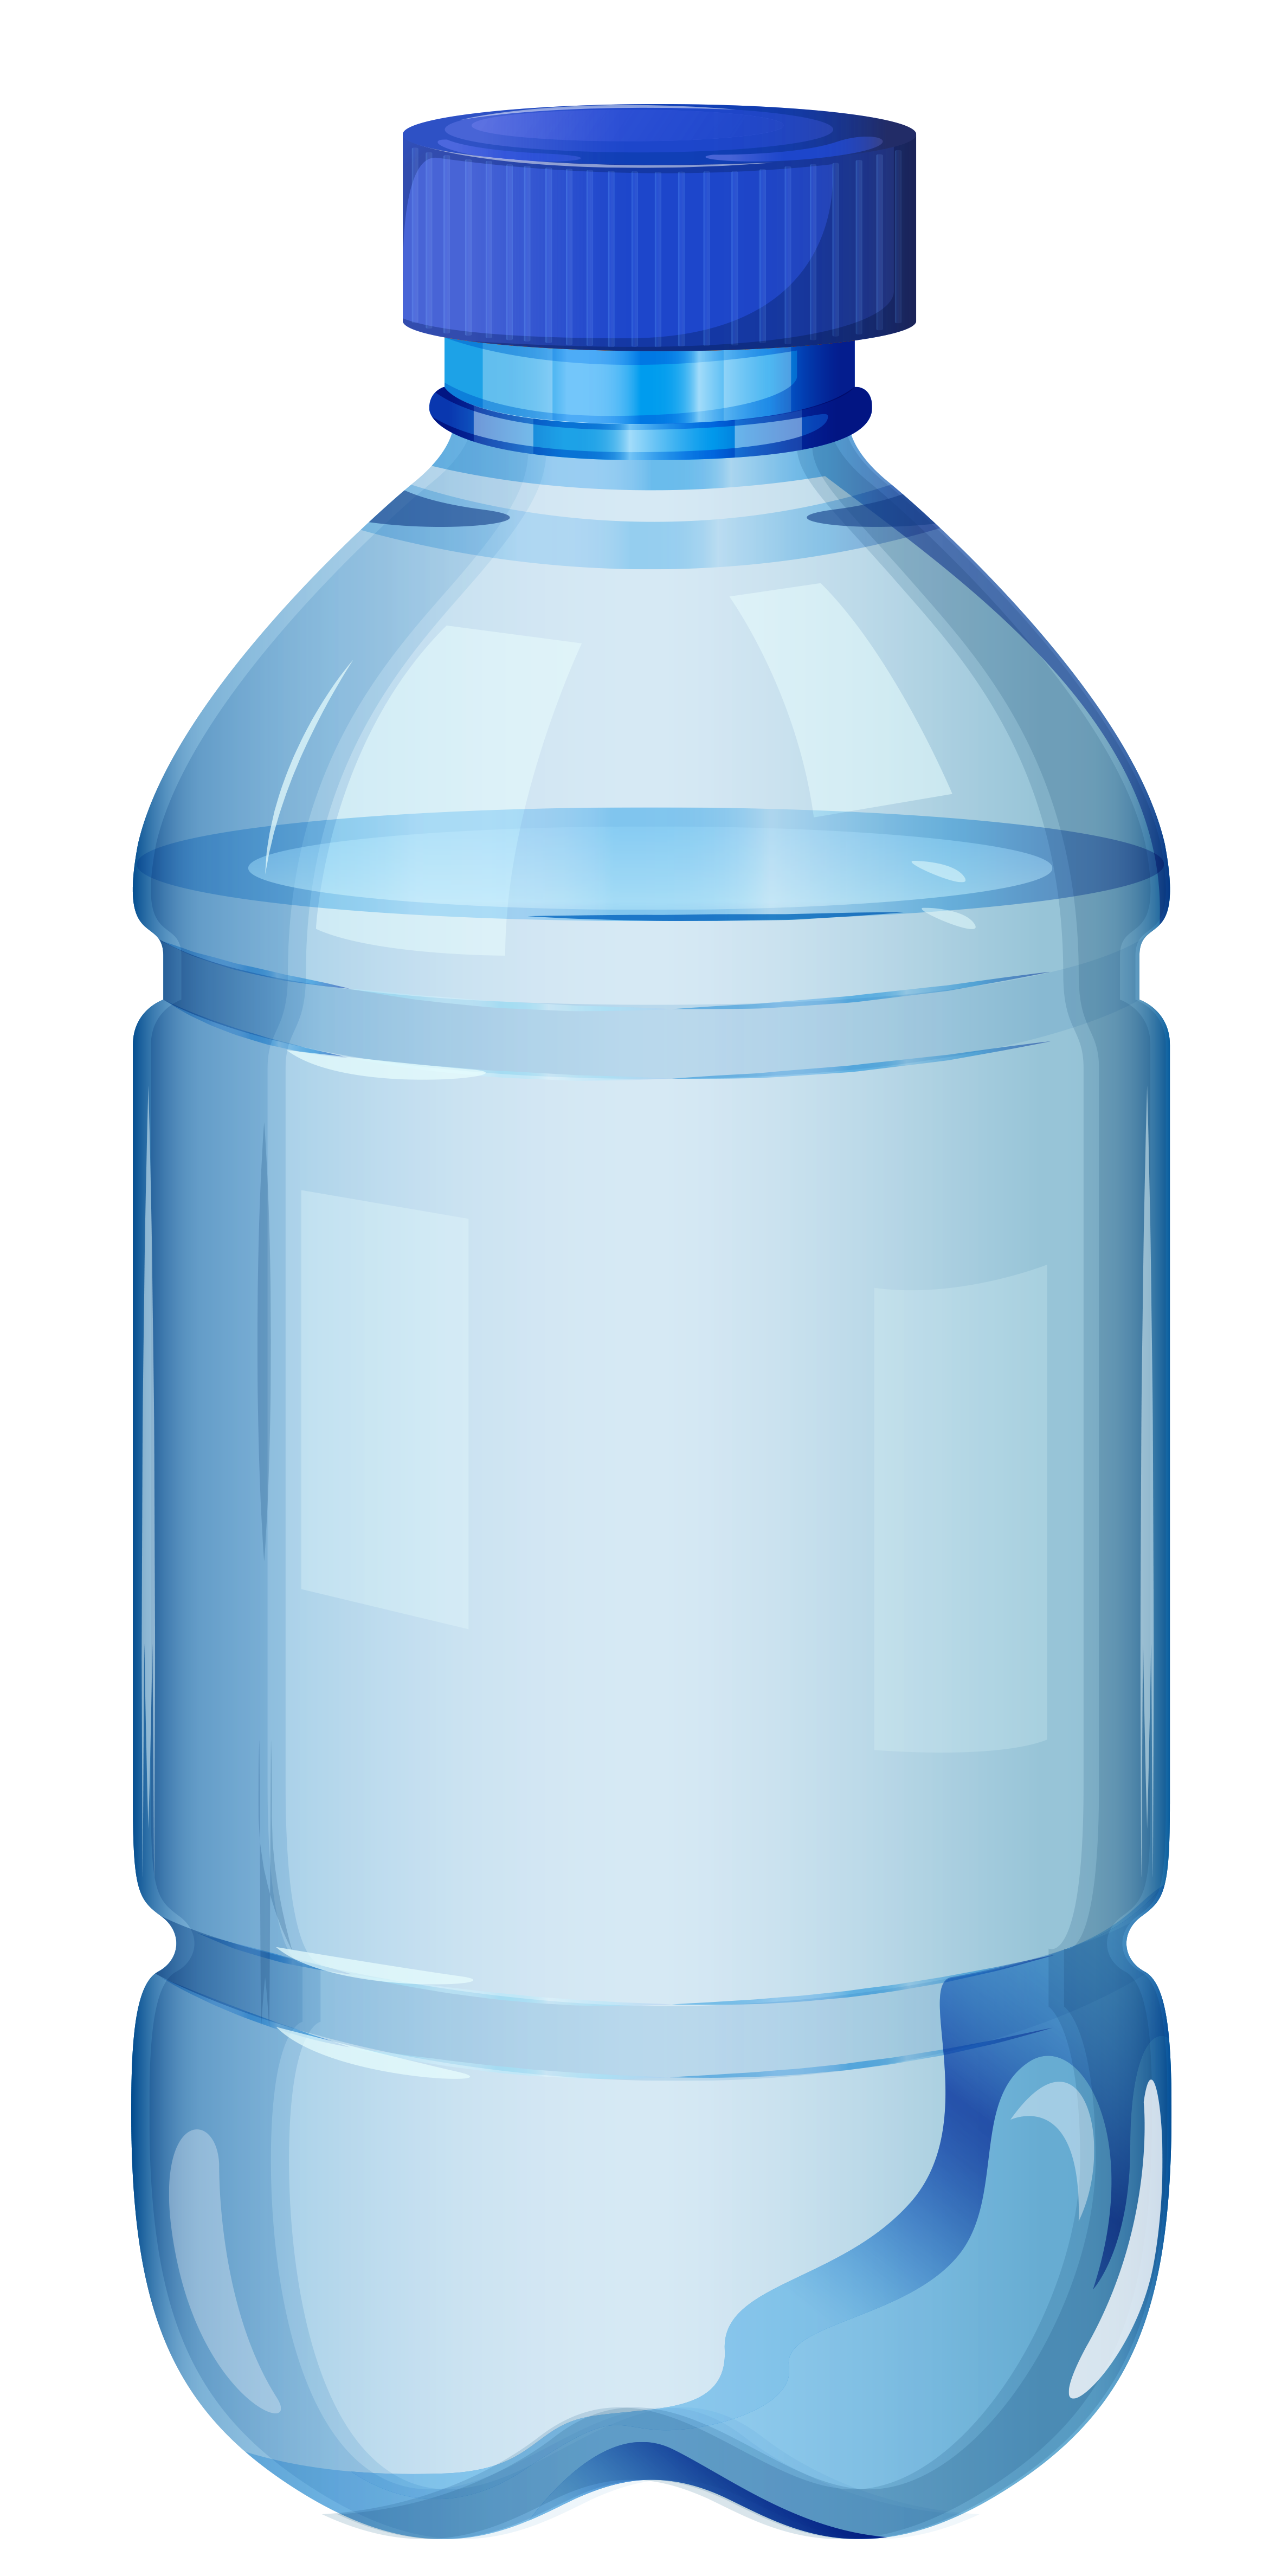 Water png image cliparts. Vegetables clipart bottle gourd